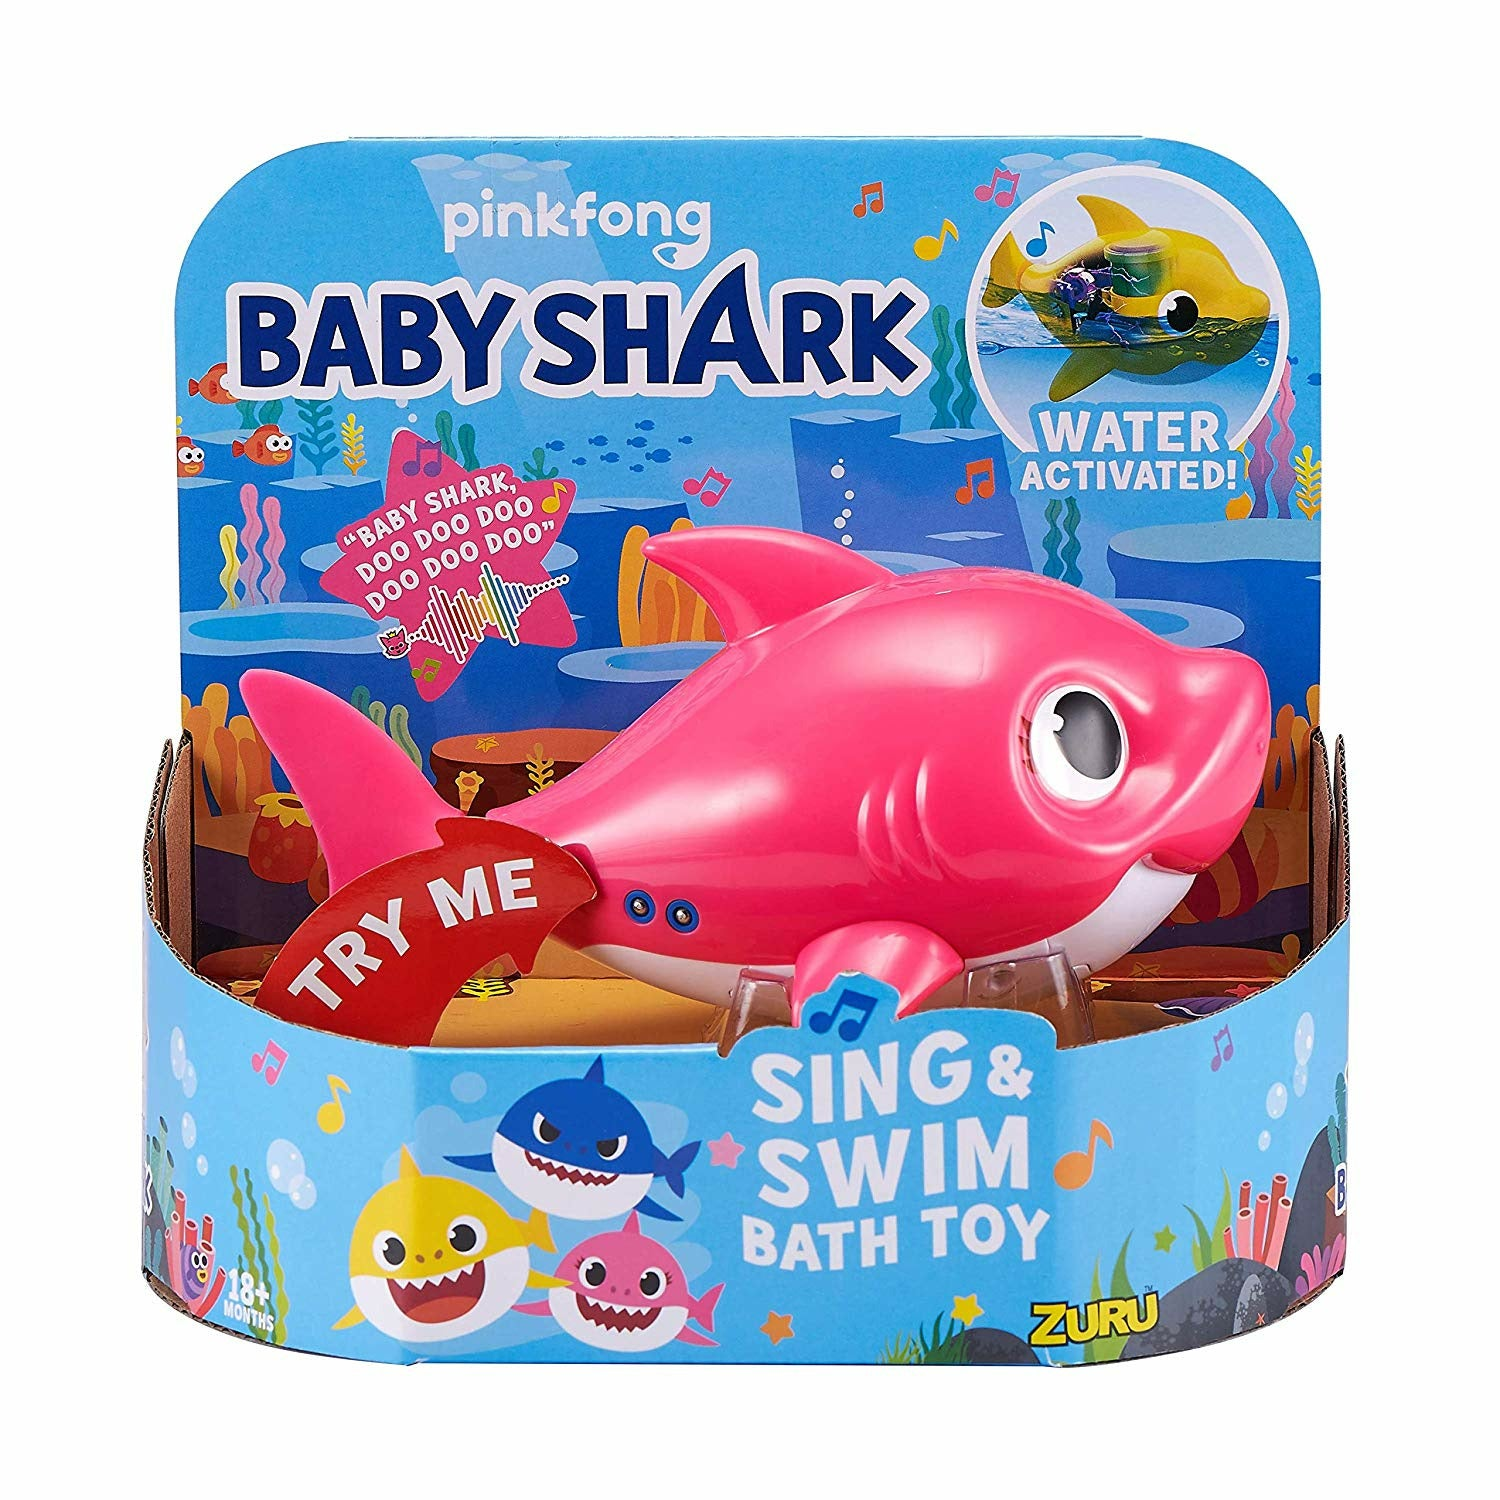 Baby Shark Mommy Shark Pink Robo Alive Junior Sing & Swim Bath Toy